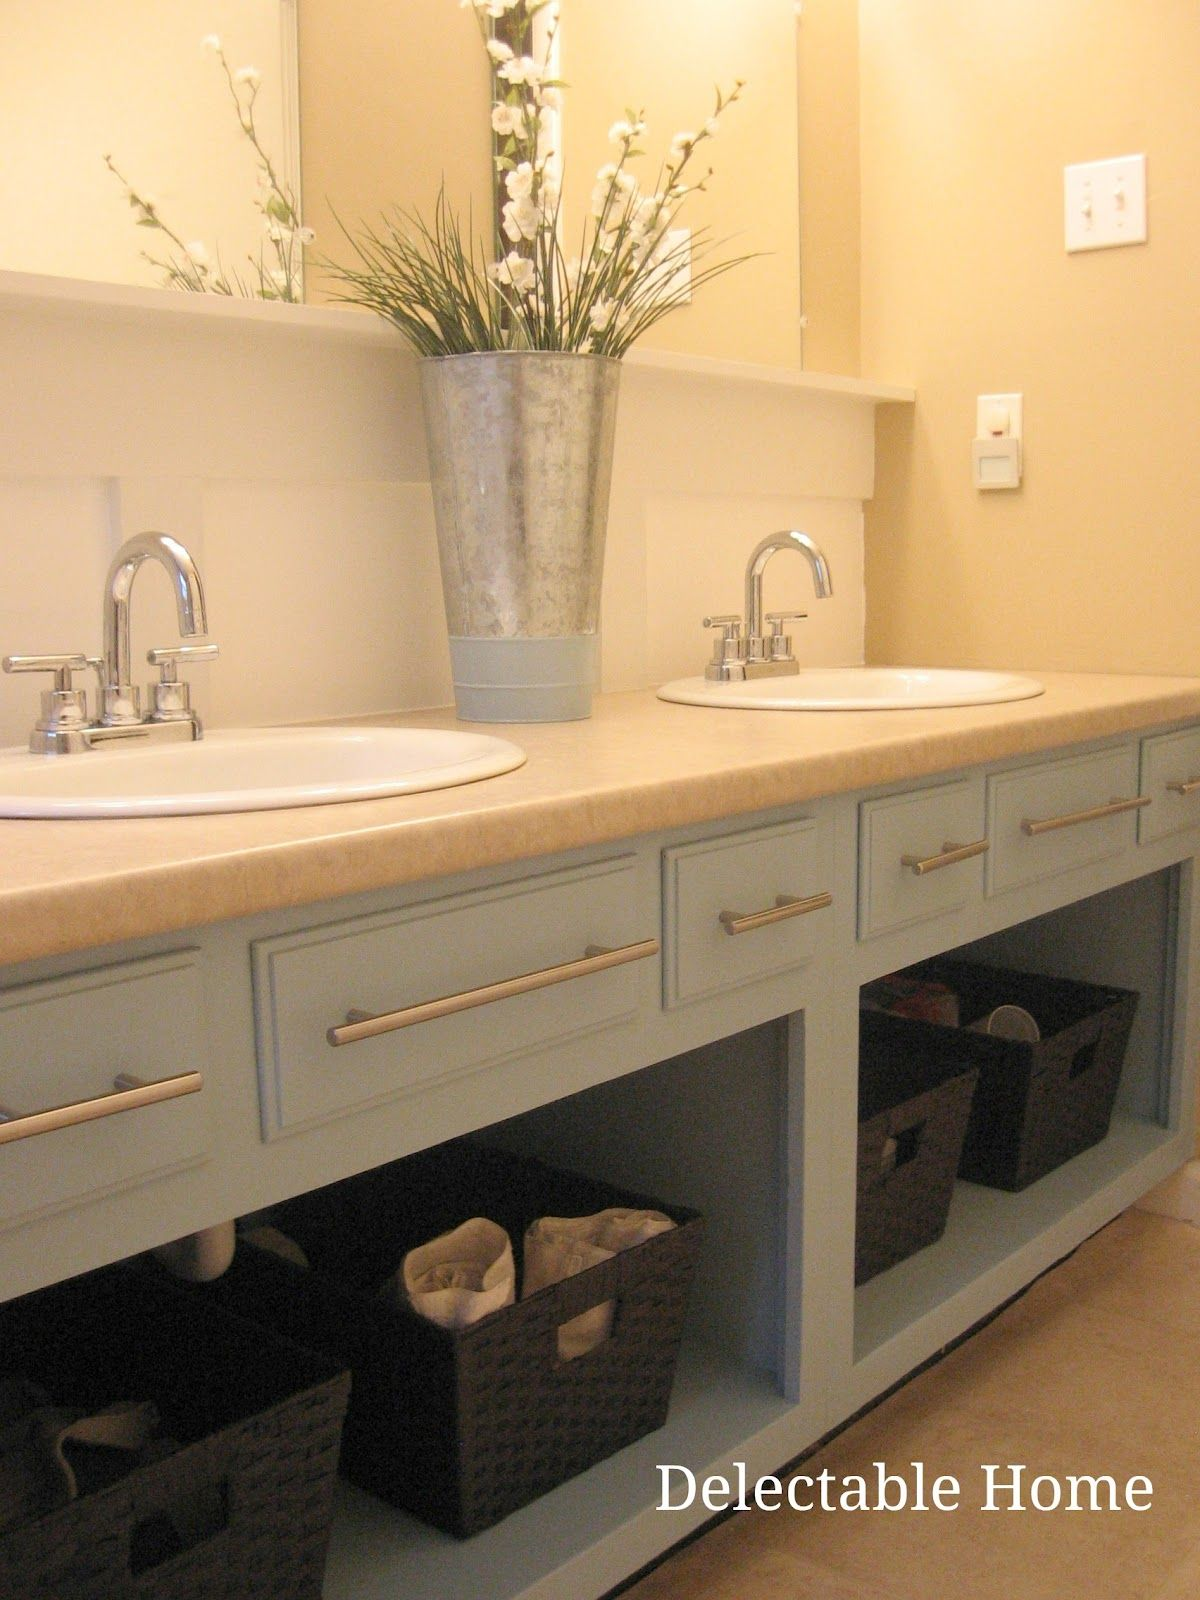 Bathroom Vanity Doors remove the doors and repaint an old bathroom vanity for an updated